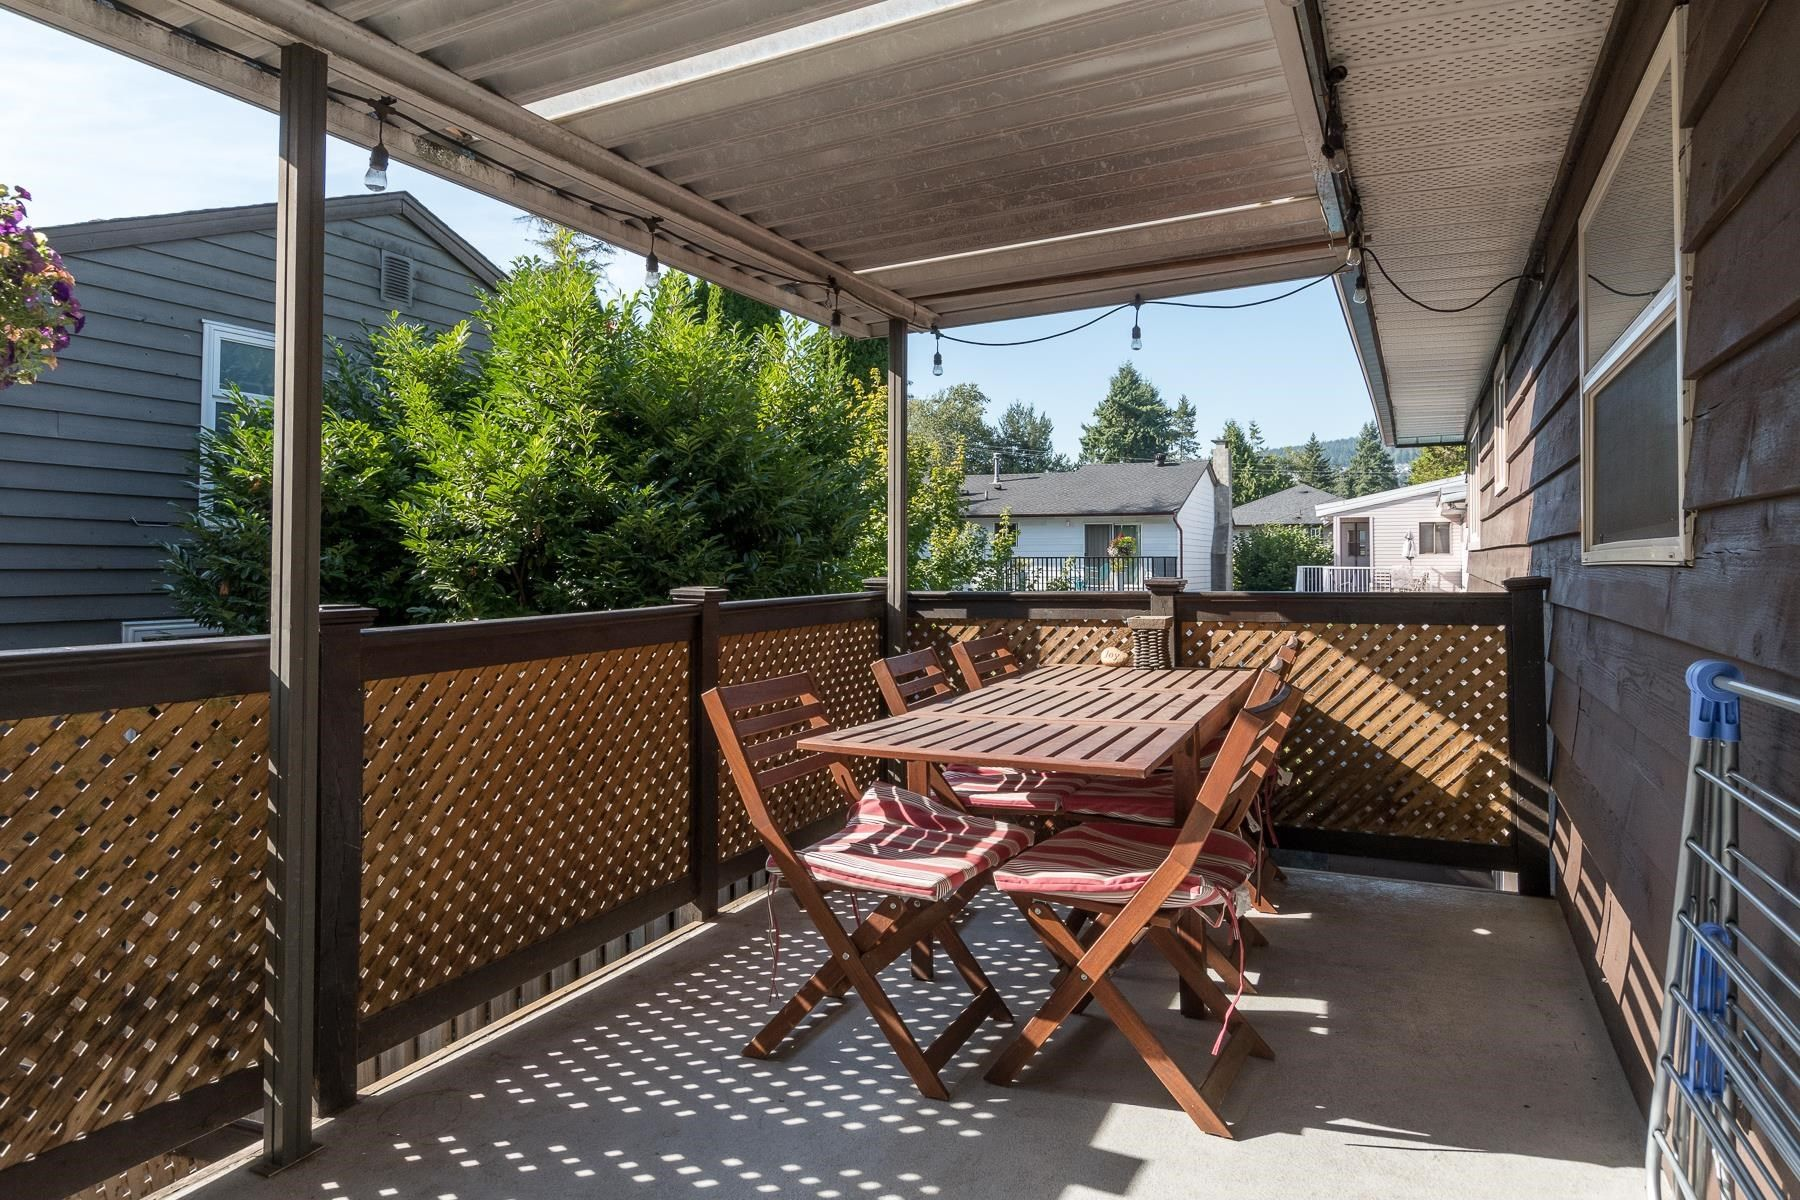 Photo 20: Photos: 3671 SOMERSET Street in Port Coquitlam: Lincoln Park PQ House for sale : MLS®# R2610216